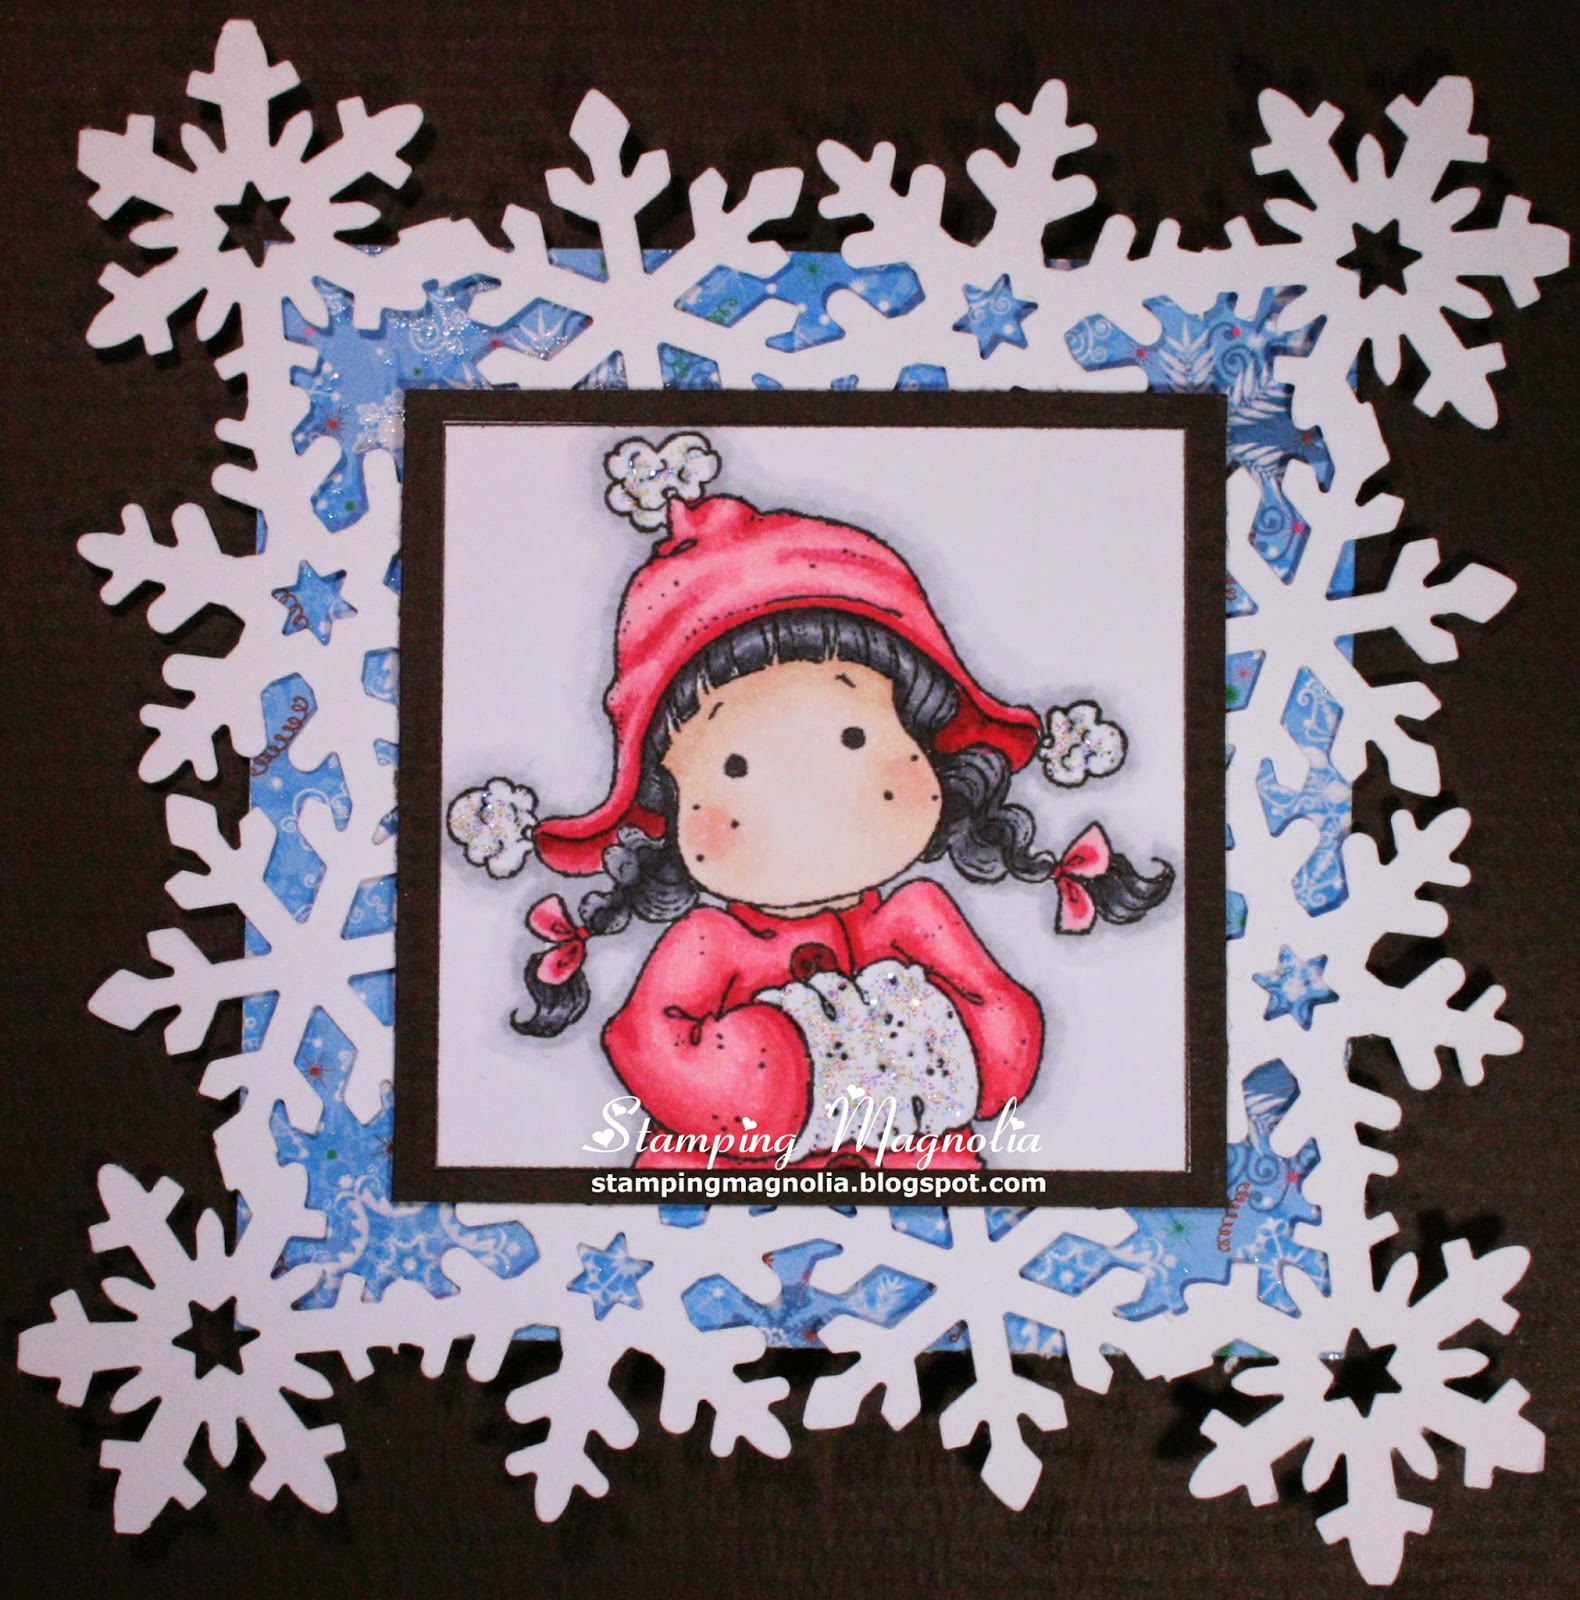 Coloring Magnolia Stamp Sweet Christmas Dreams Collection - Winter Tilda